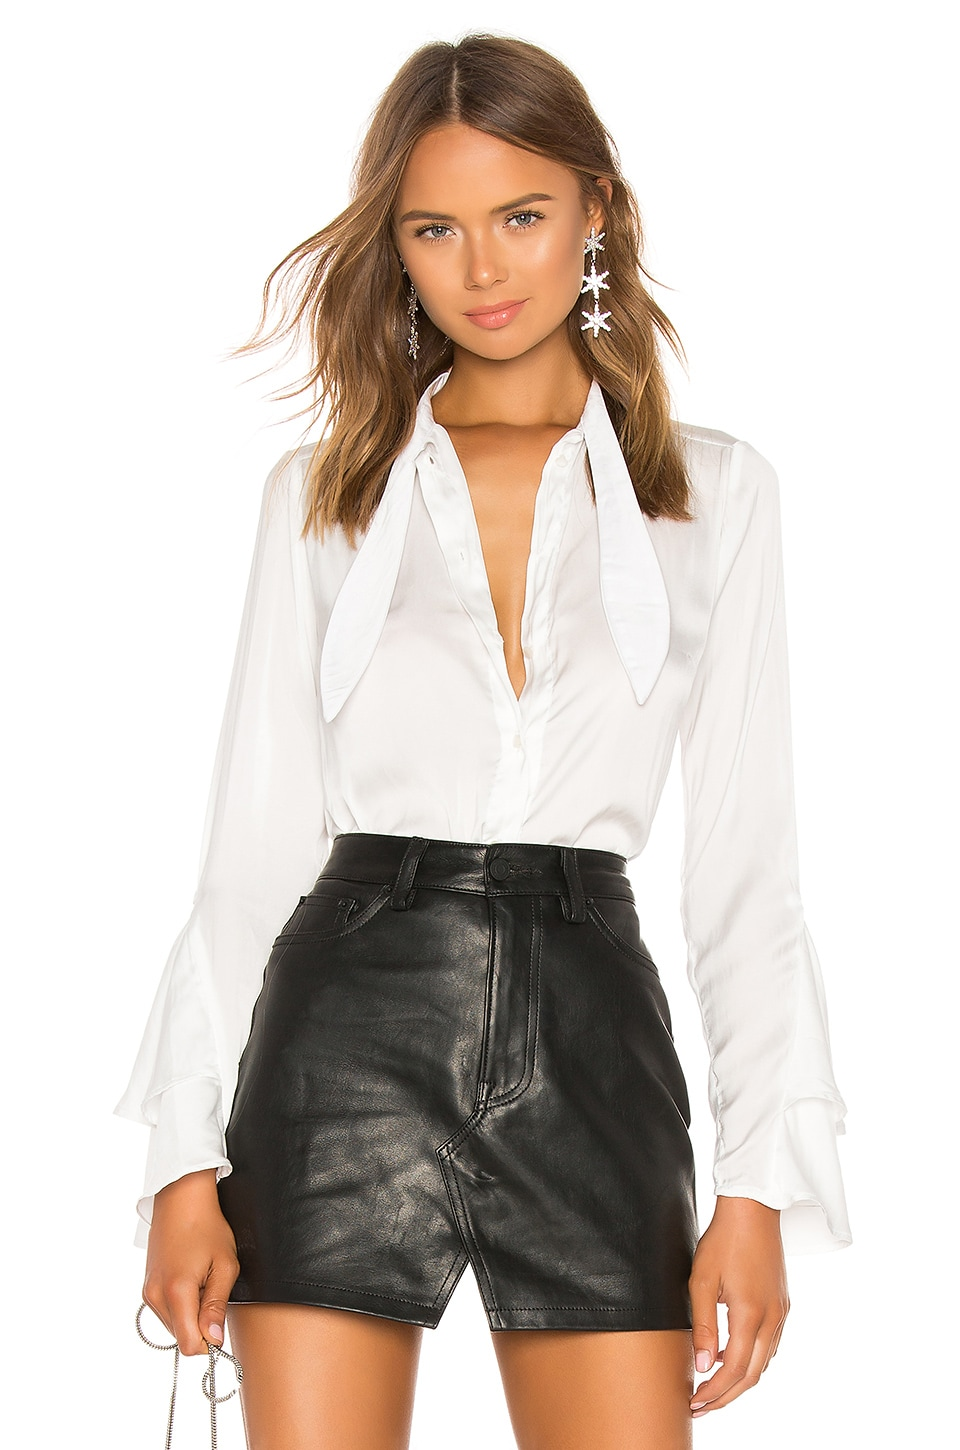 AZULU Paloma Blouse in White